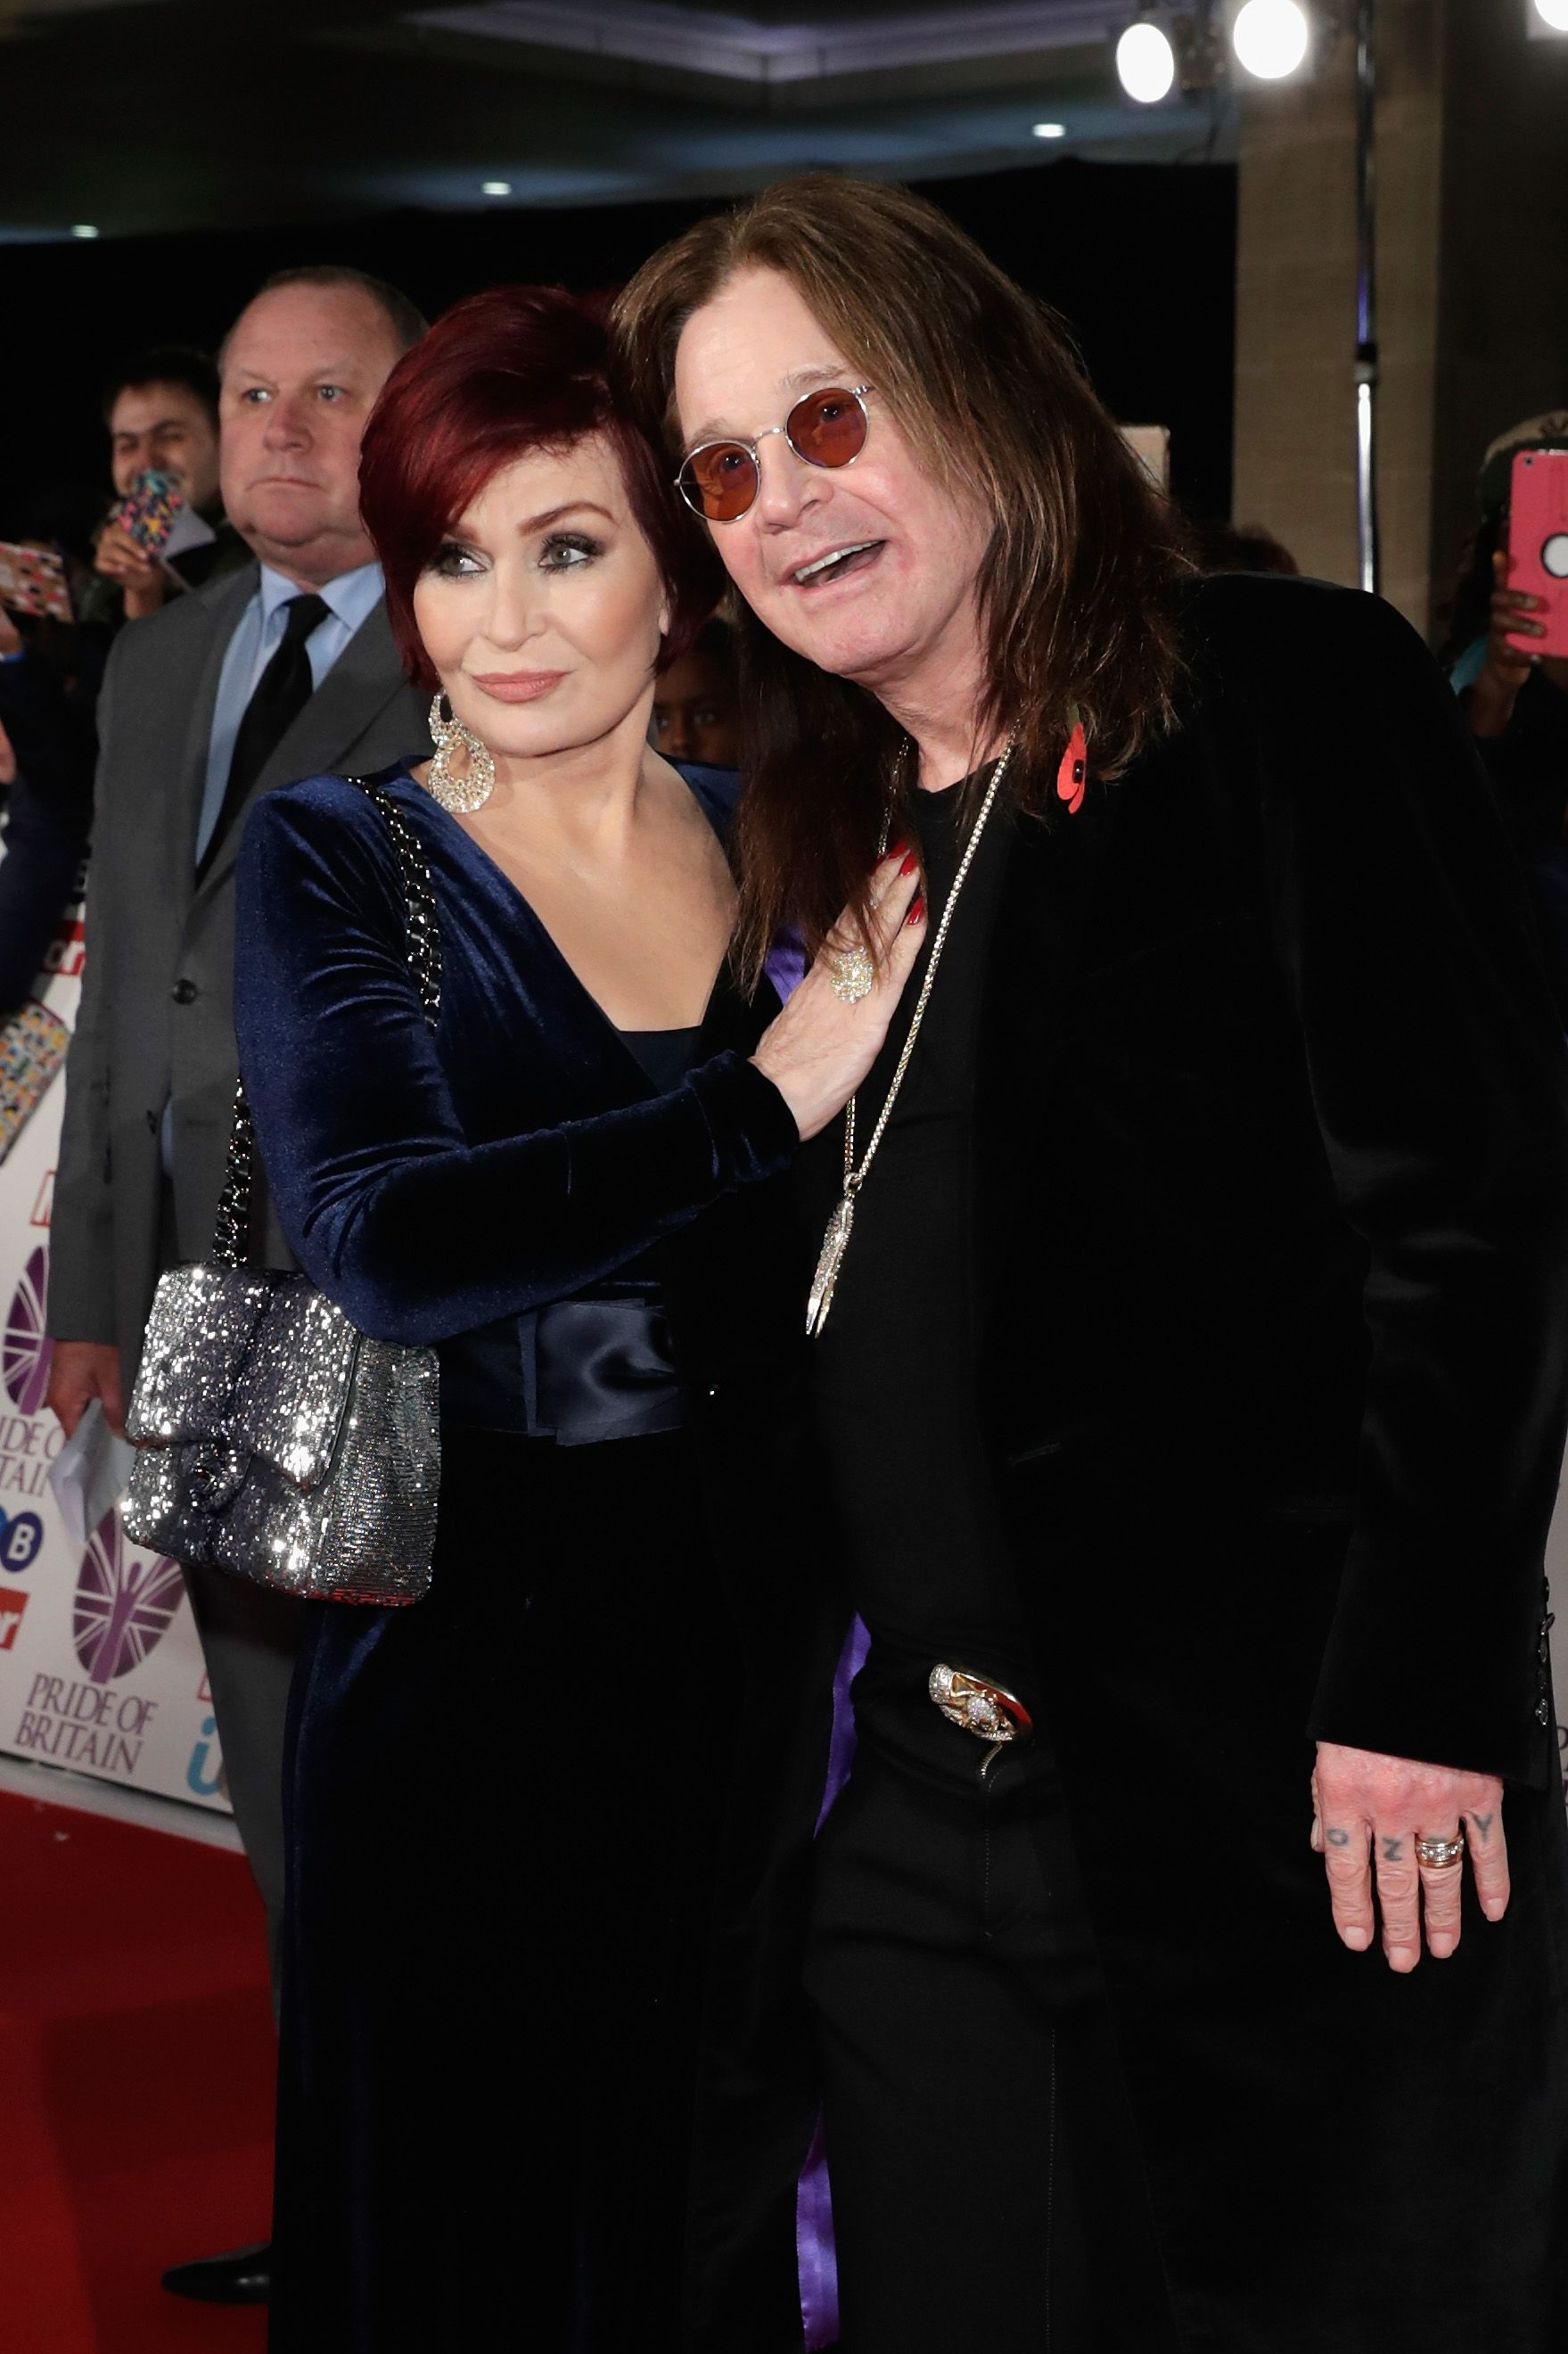 Sharon Osbourne and Ozzy Osbourne at the Pride Of Britain Awards at Grosvenor House in London, England   Photo: John Phillips/Getty Images